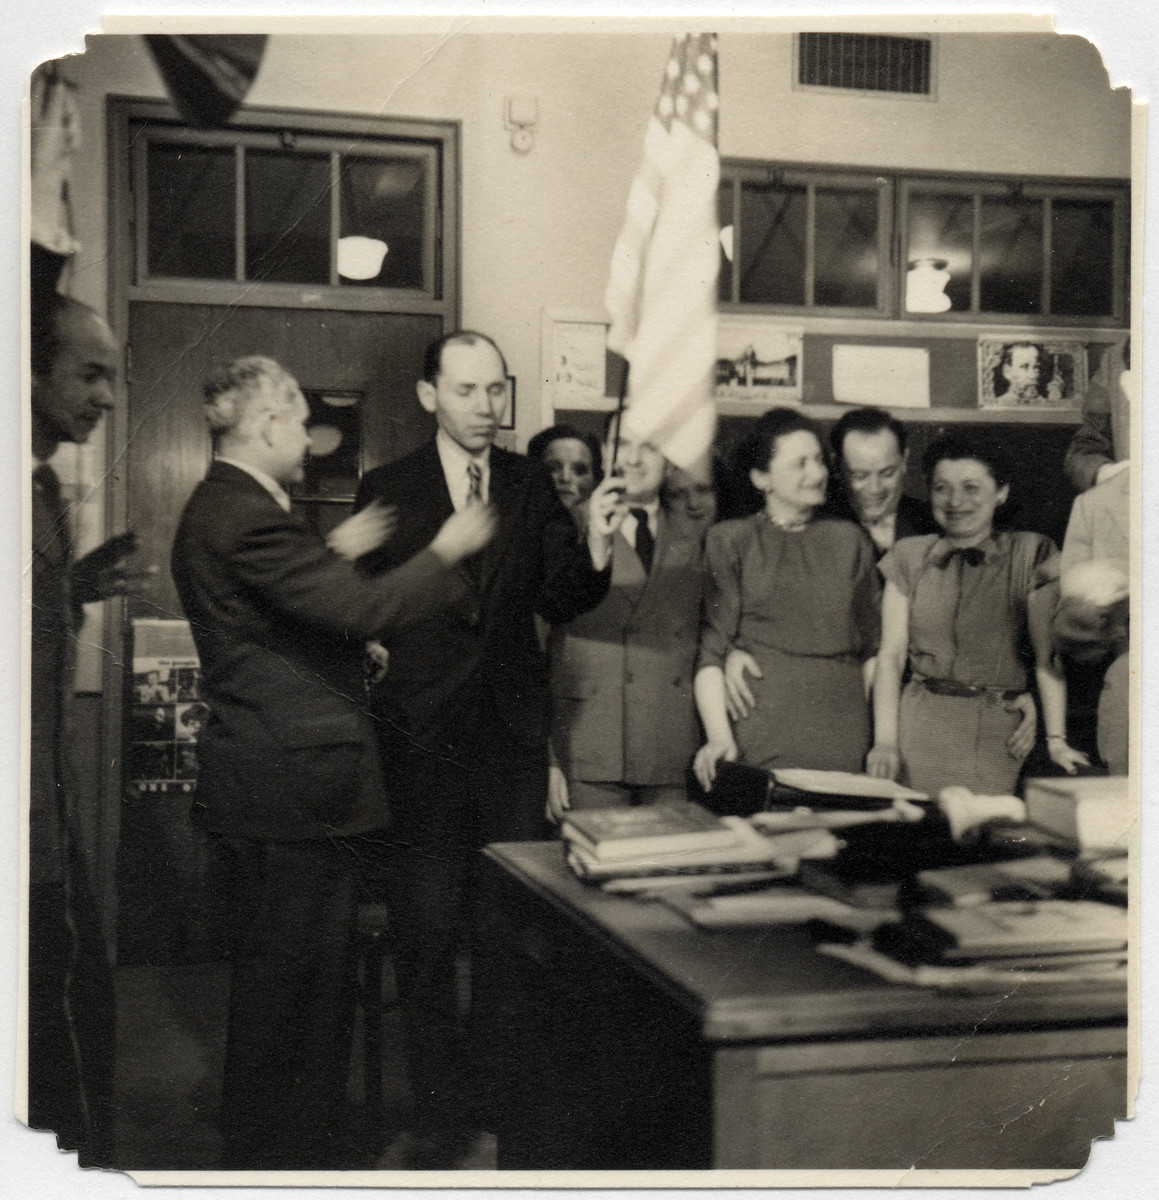 Students in an English language class pledge allegiance to the flag.  Among those pictured are Hilda Wiener Rattner (back row, to the left of the flag), Richard Wiener (behind flag), Meta Novak, a German Holocaust survivor (front, center), and William and Charlotte Friedman, from Hungary (right).